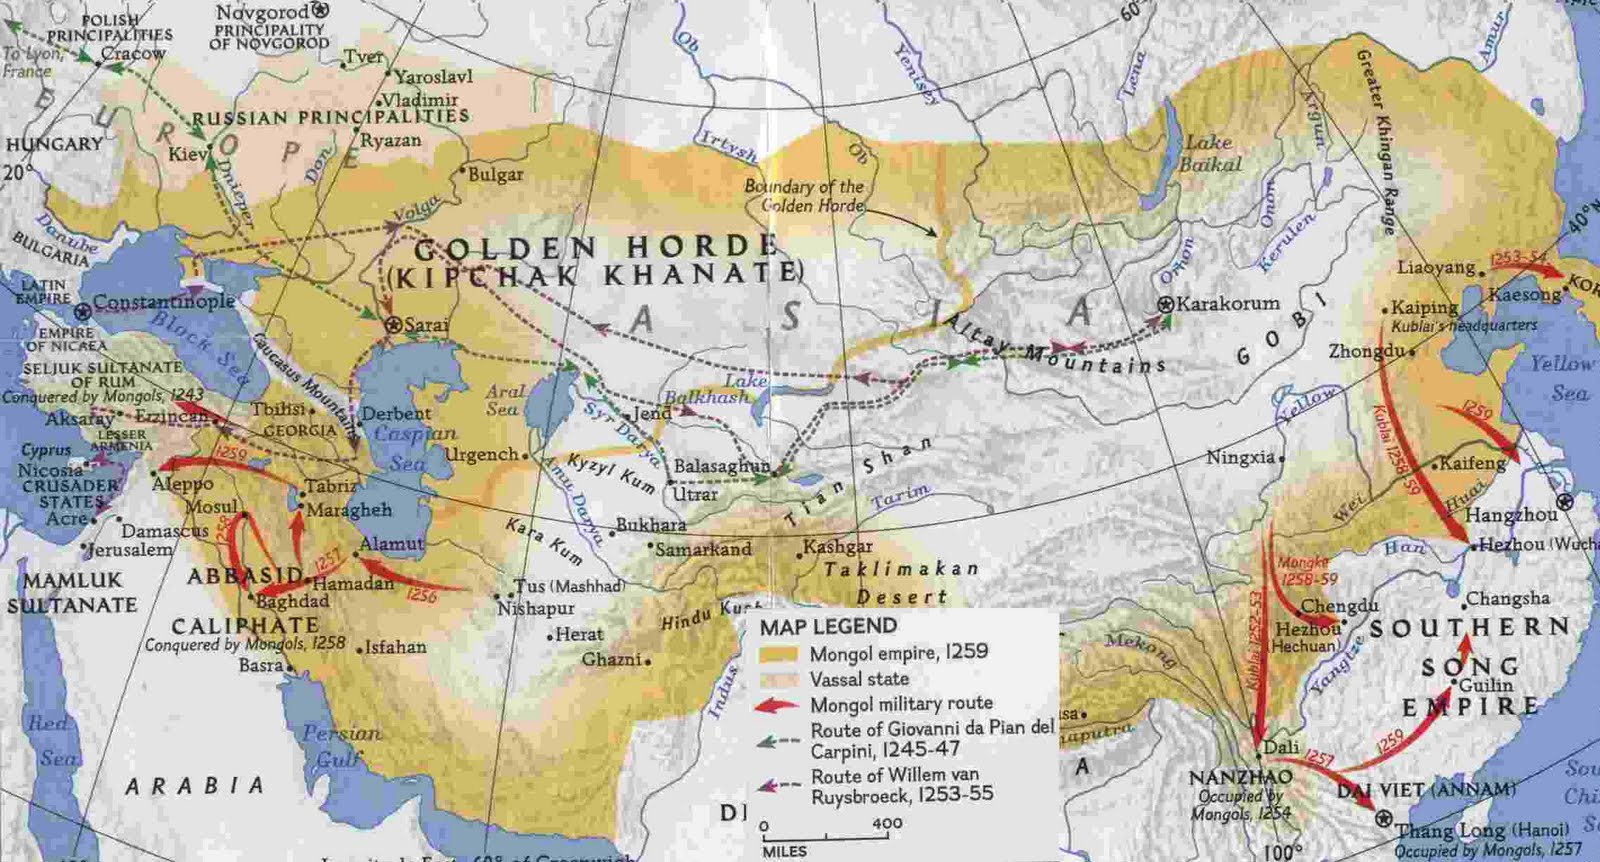 genghis khan and the mongol empire essay The effects of genghis khan's mongol empire on europe were terrors of the  plague and conquest, but also technological and scientific.